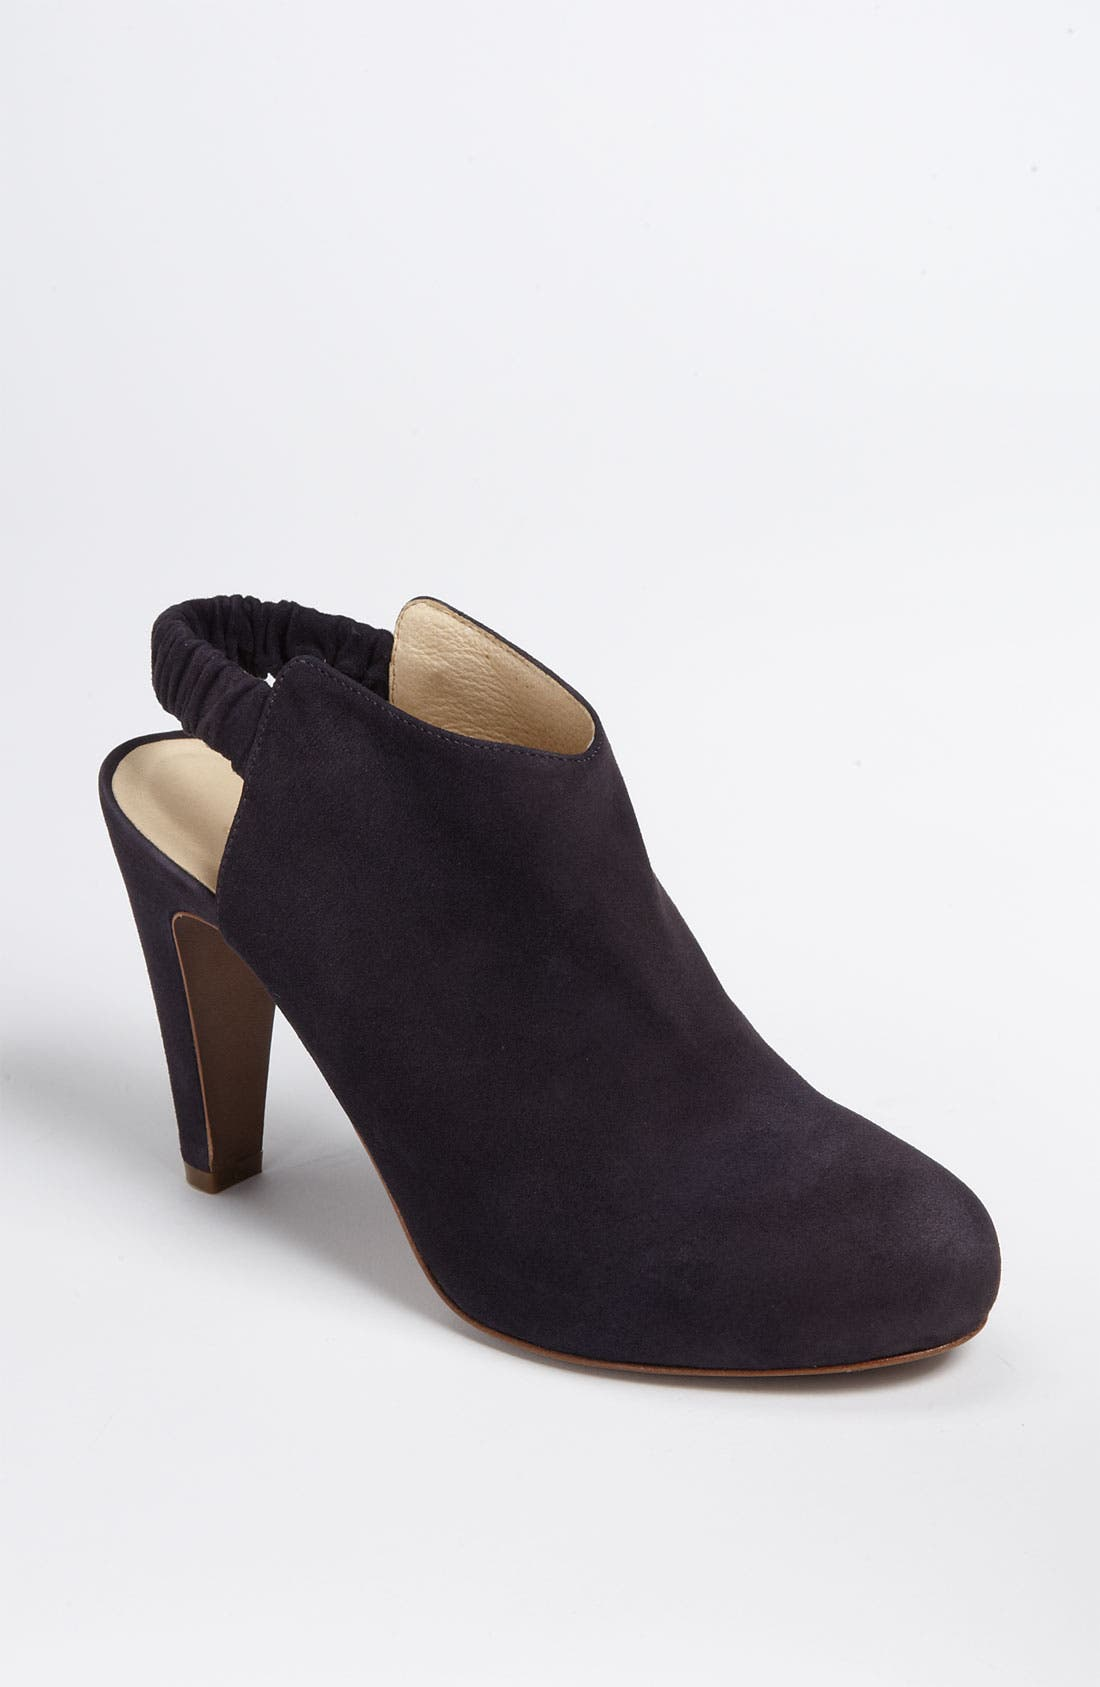 Alternate Image 1 Selected - See by Chloé Slingback Pump